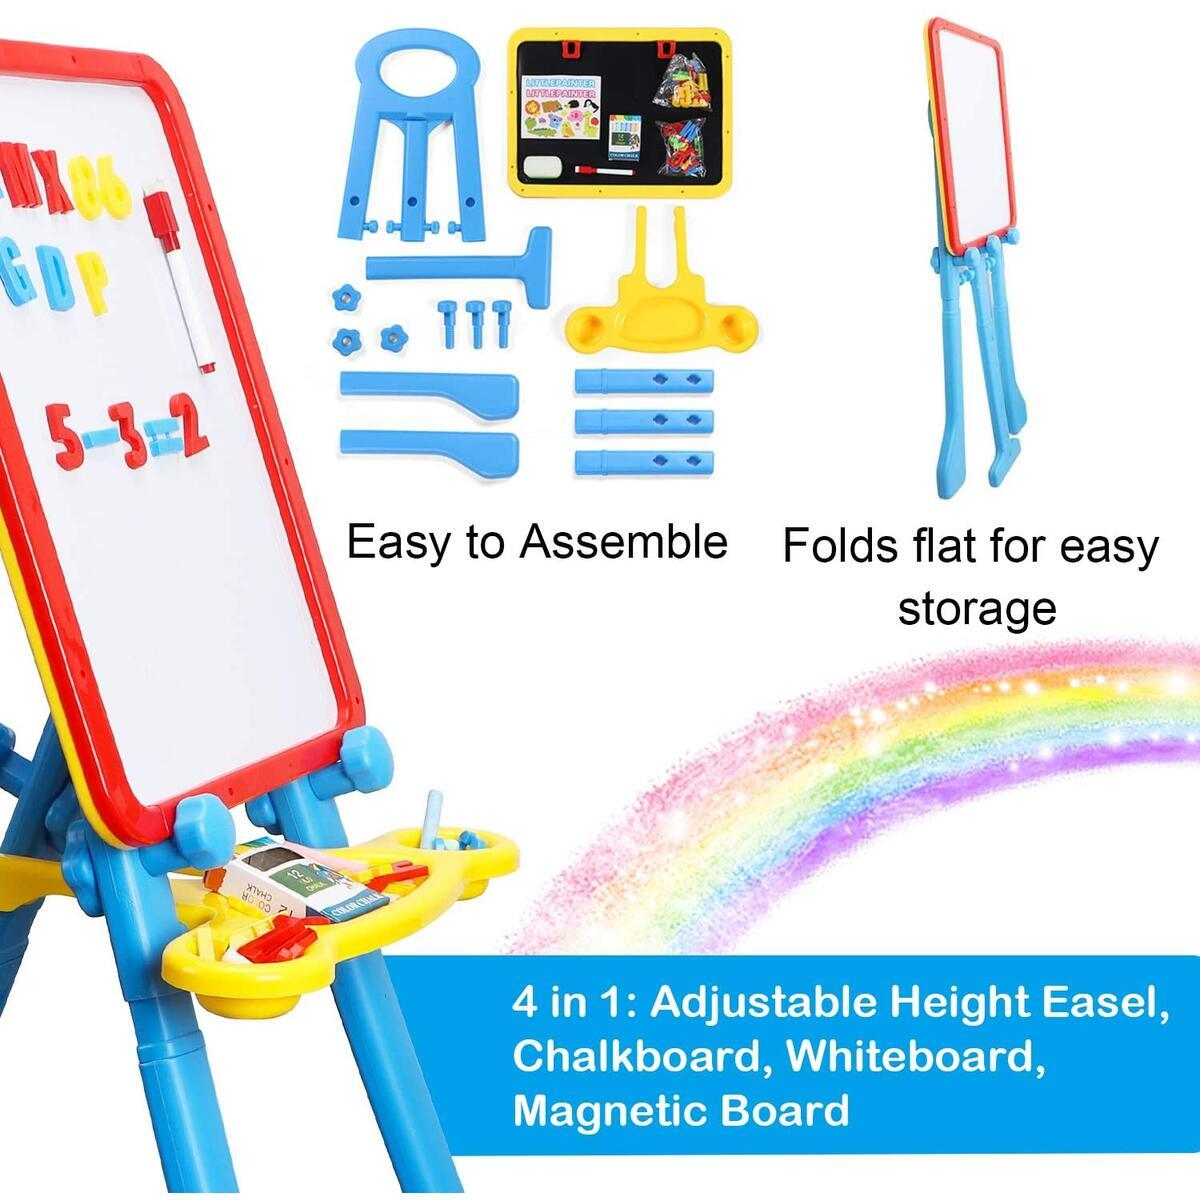 Art Easel for Kids | 4 in 1 Magnetic Board, Chalkboard, Painting Easel, and Drawing White Board for Kids Toddler | Includes Magnetic Letters and Numbers | Easy Storage and Adjustable Height